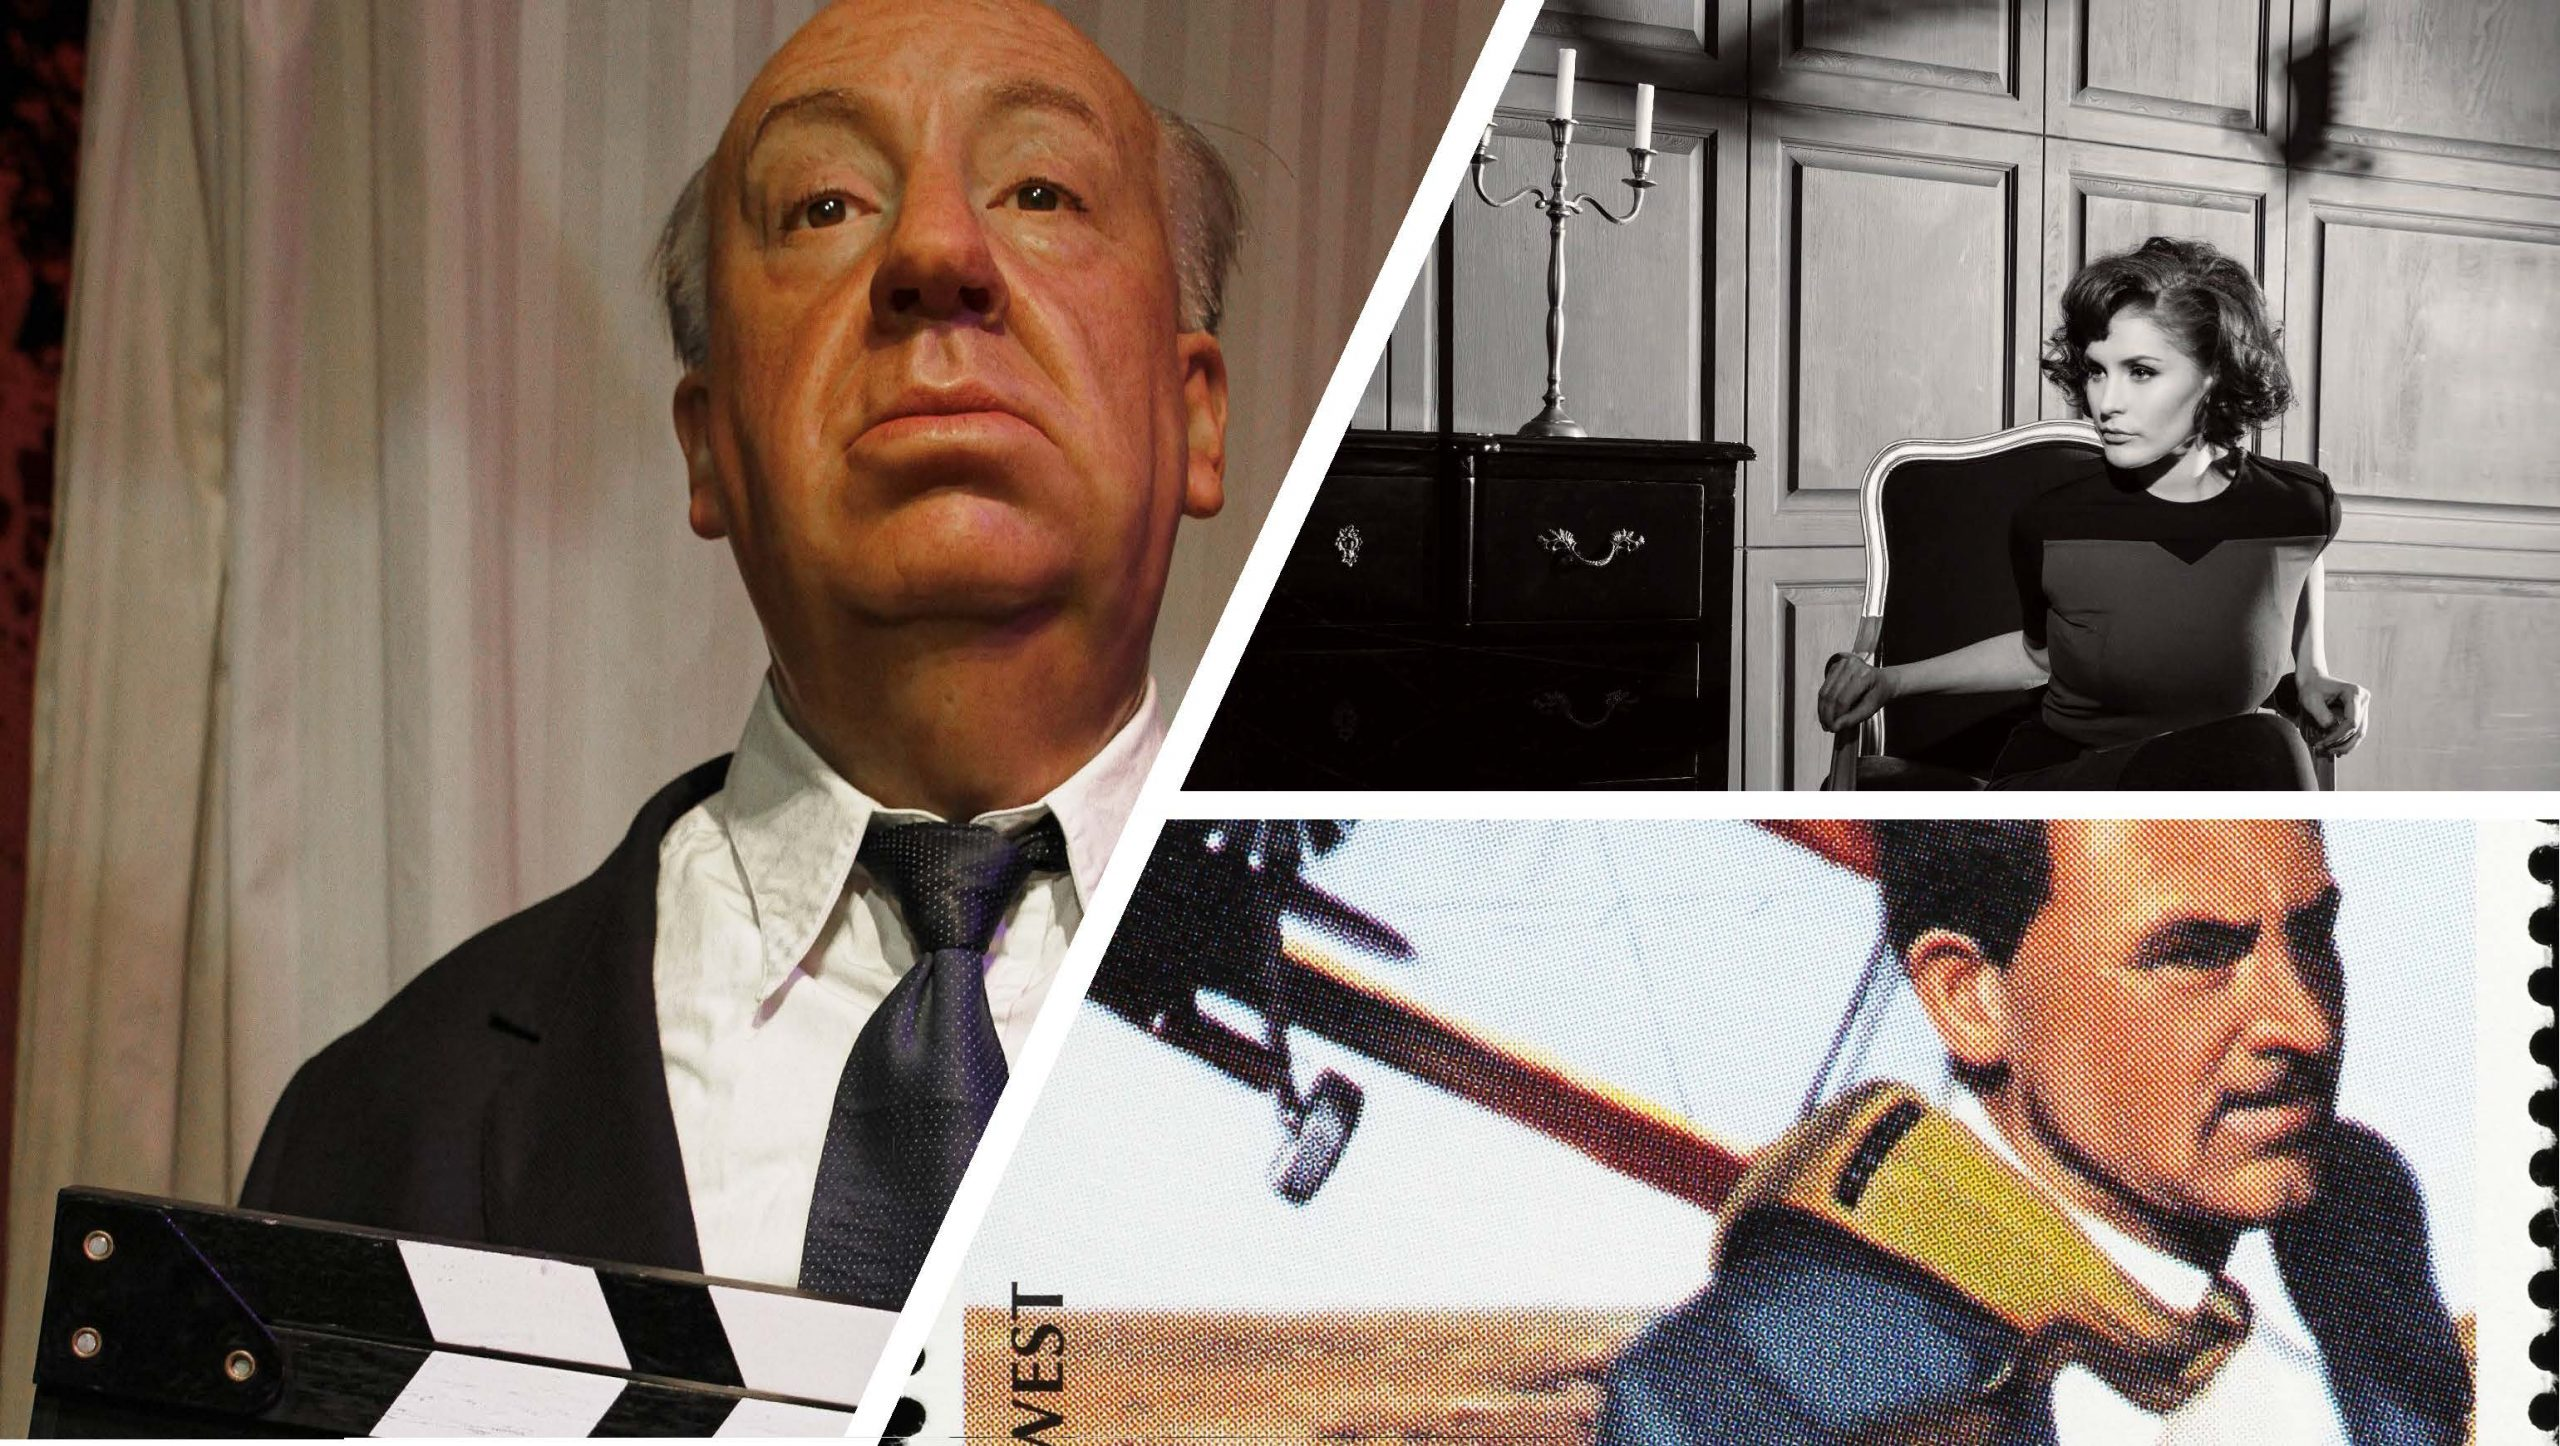 Alfred Hitchcock collage in a blog post about using McGuffins to build out your network